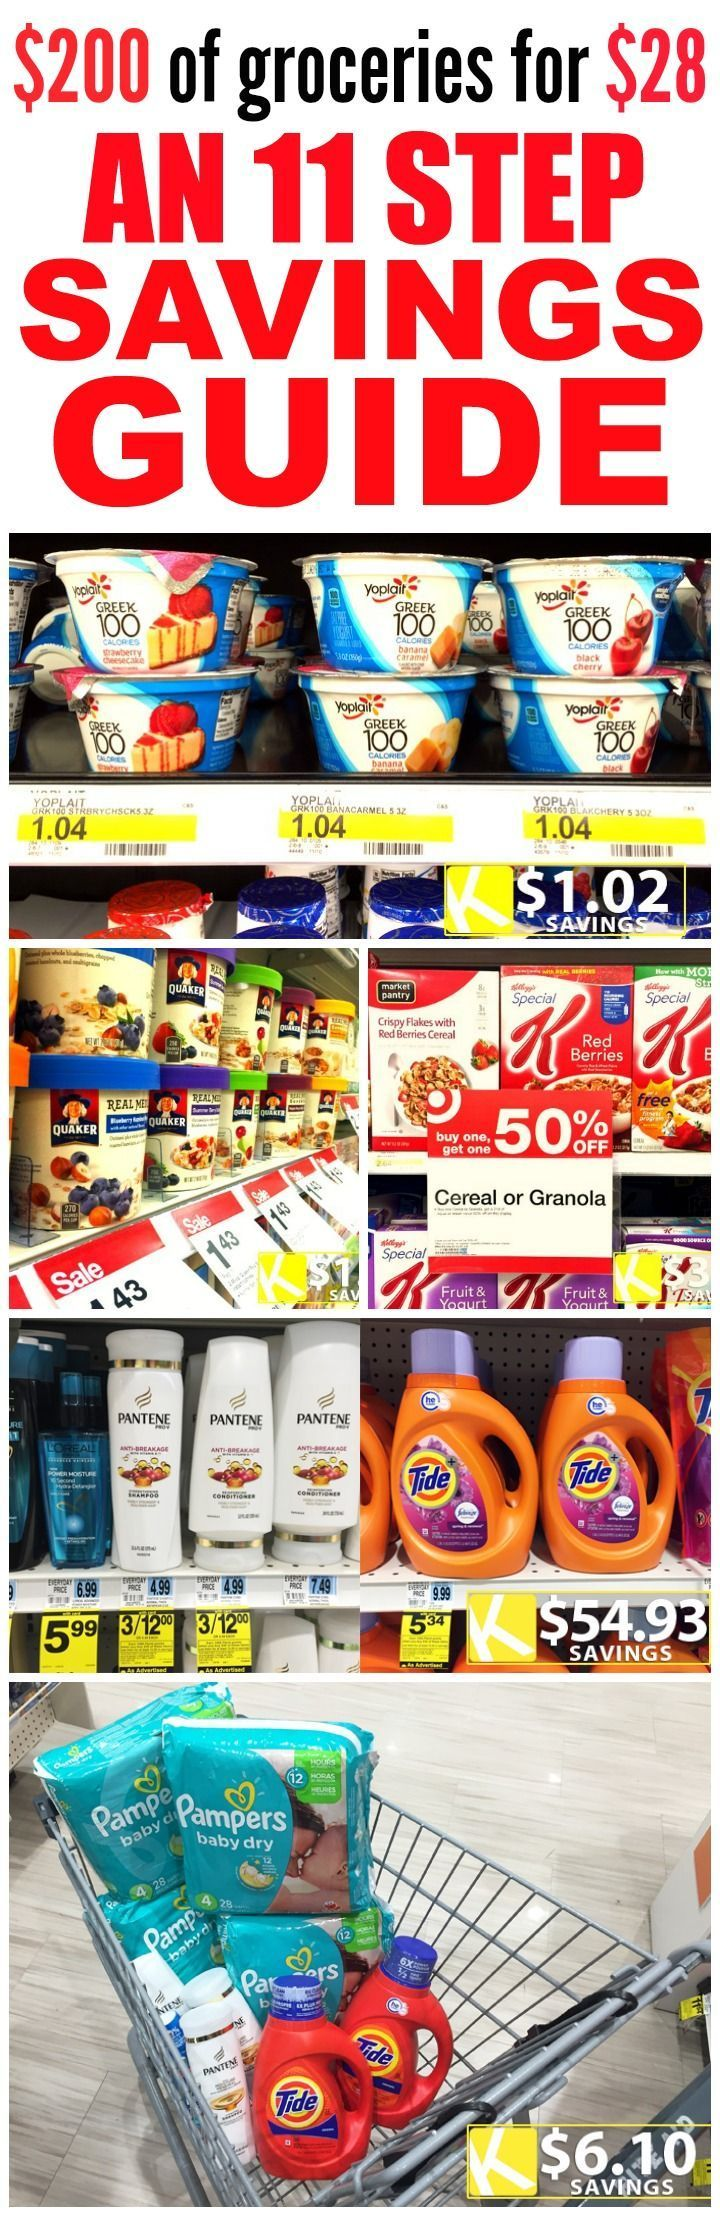 6 of the Best Krazy Coupon Lady Hacks and Guides